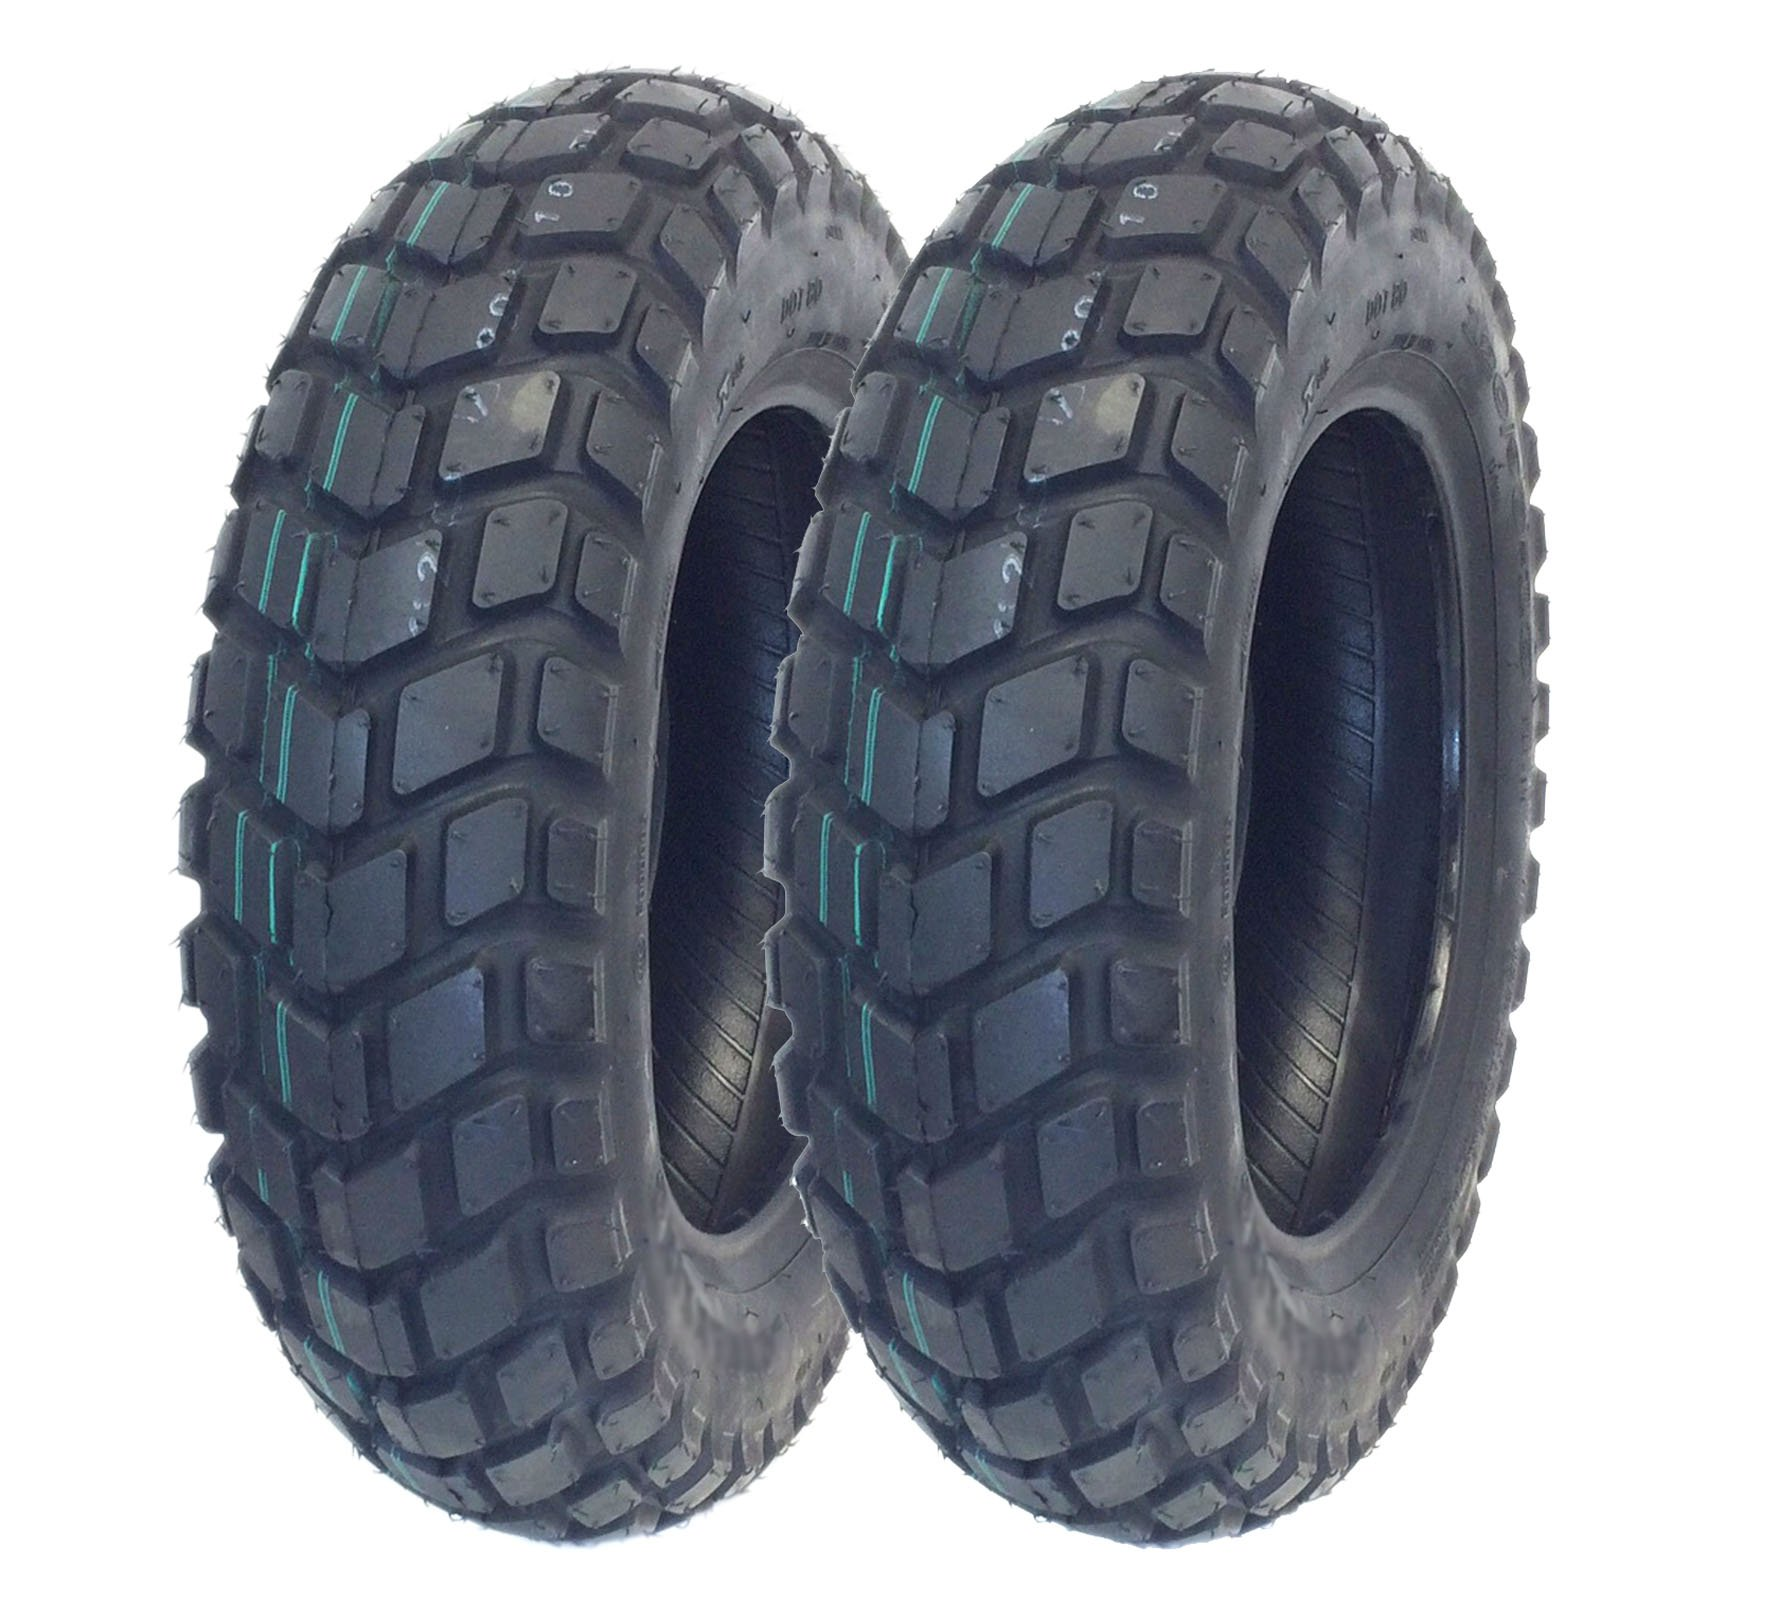 MMG Set of 2 Tires 130/90-10 (P126) Tubeless Front/Rear Motorcycle Scooter Moped by MMG